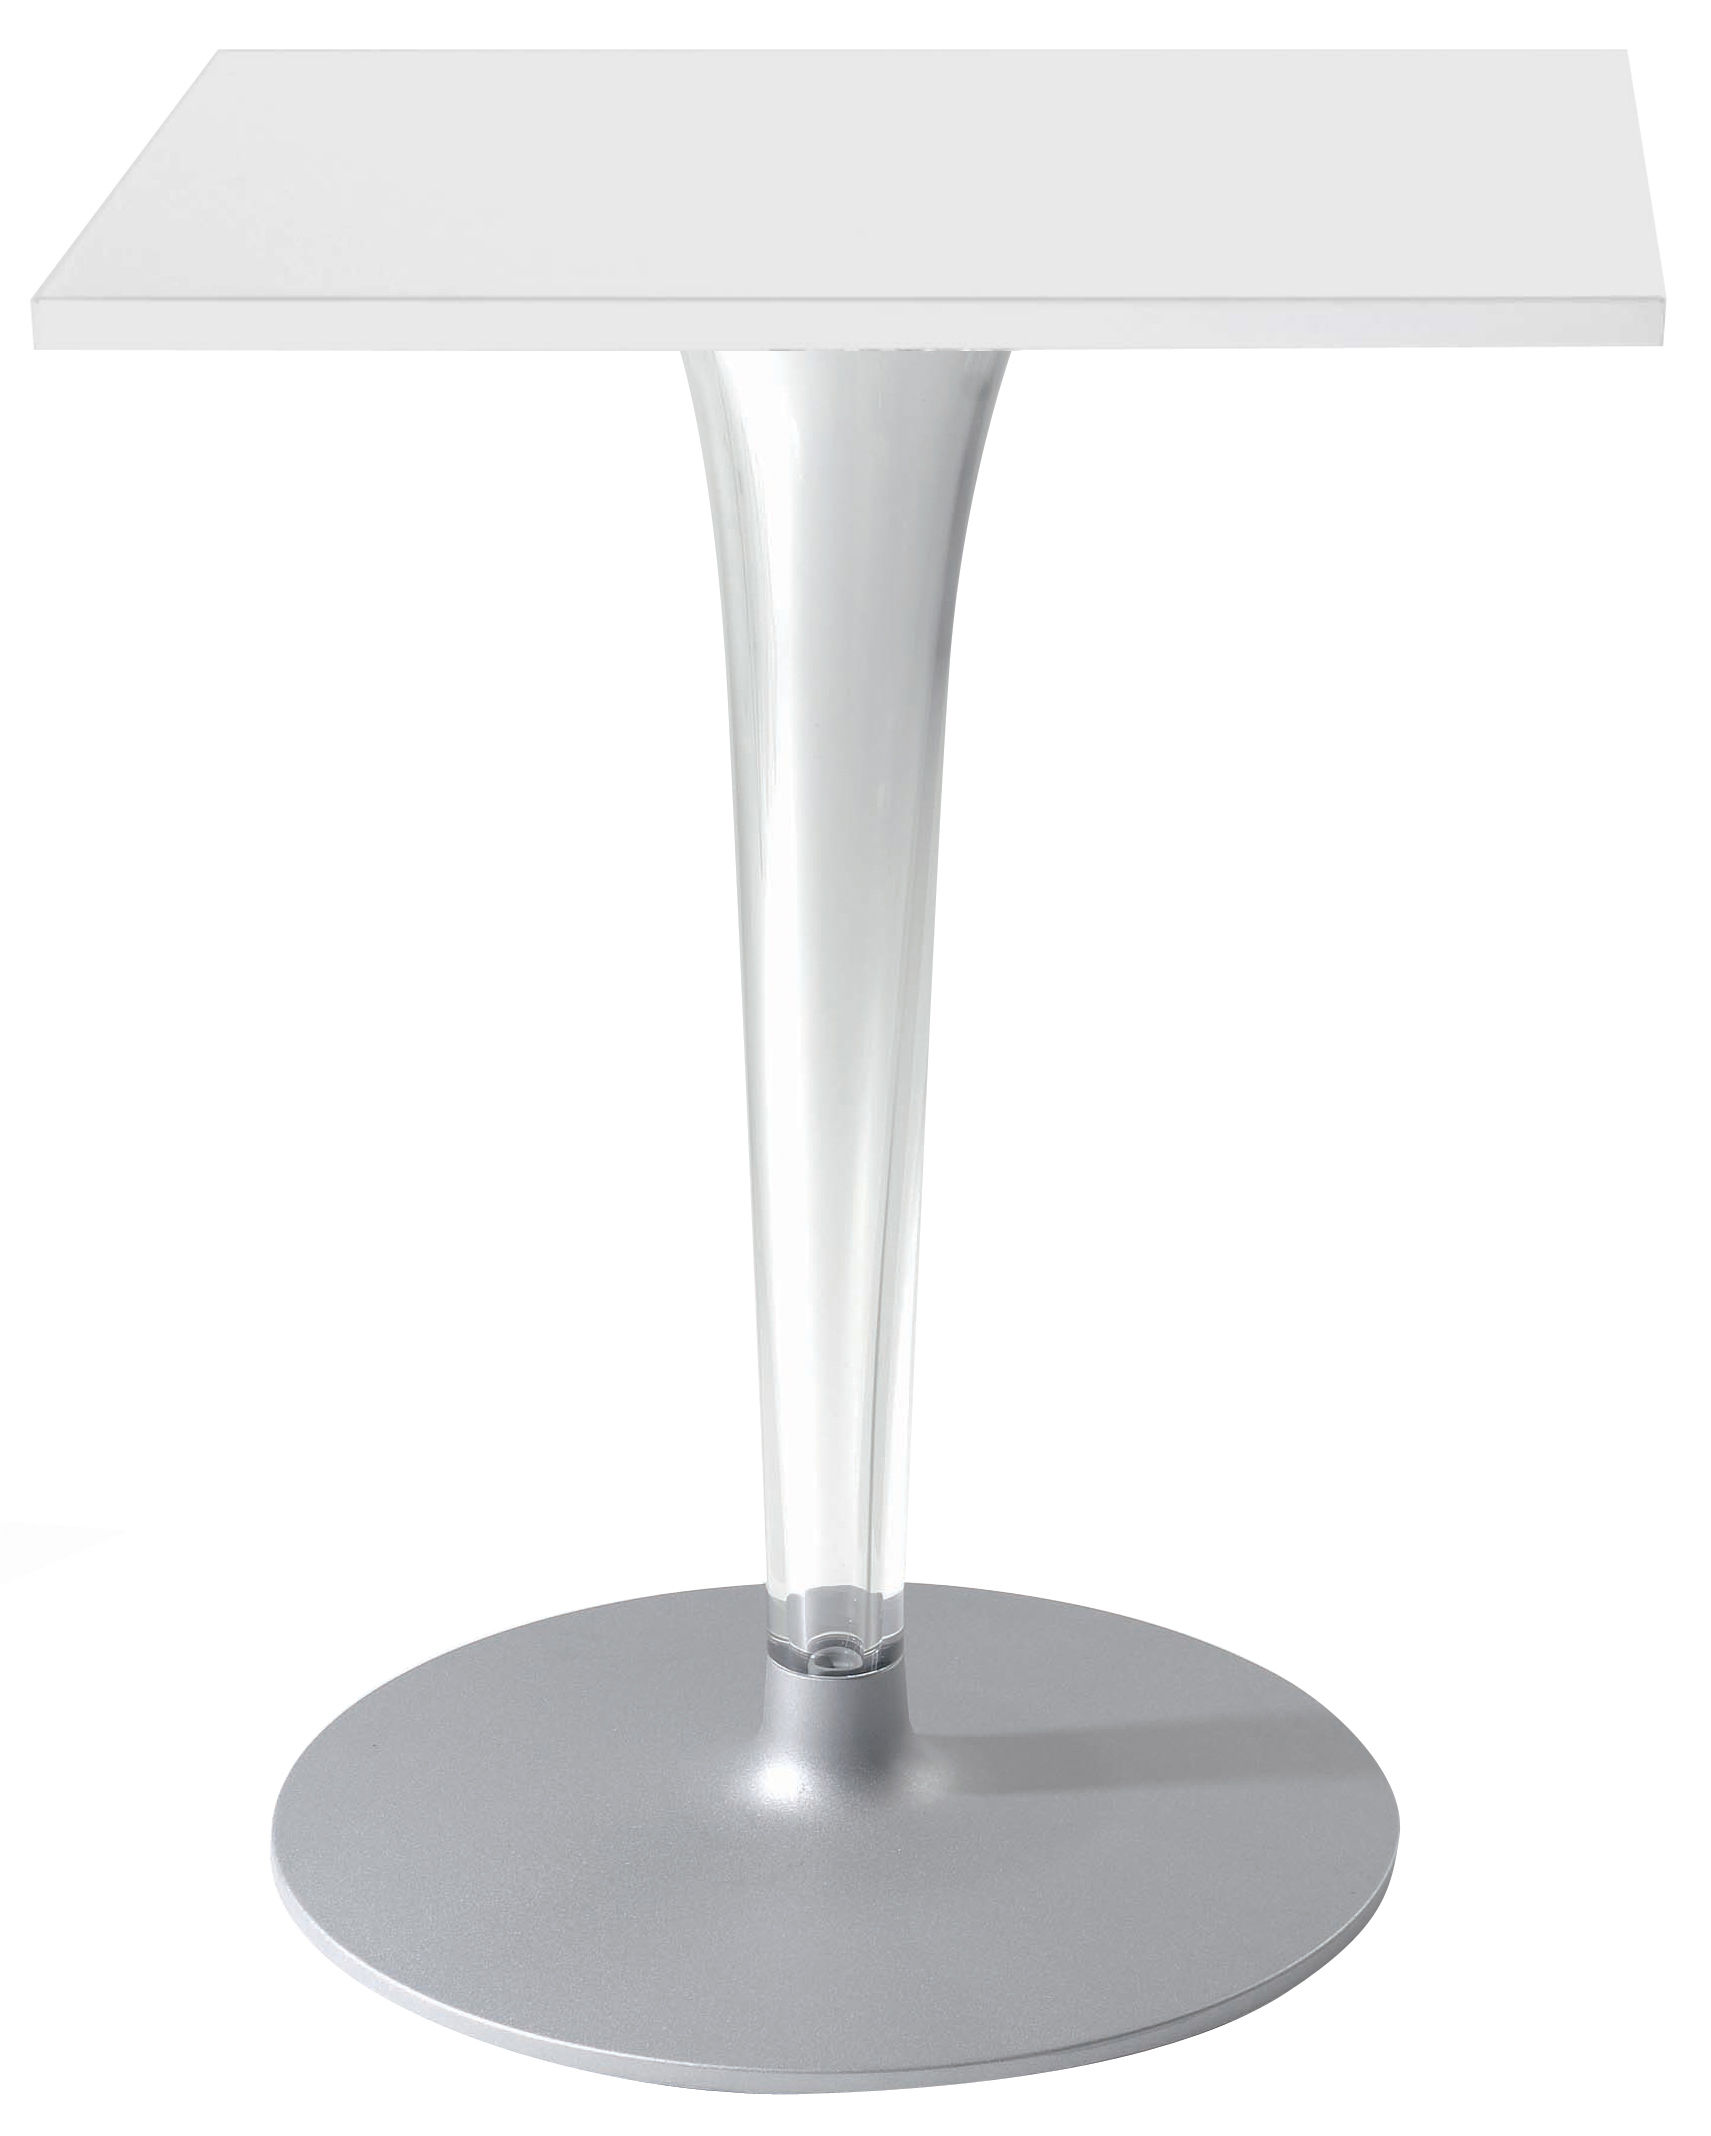 Outdoor - Tables de jardin - Table carrée Top Top - Contract outdoor / 70 x 70 cm - Kartell - Blanc/ pied rond - Aluminium verni, Mélamine, PMMA